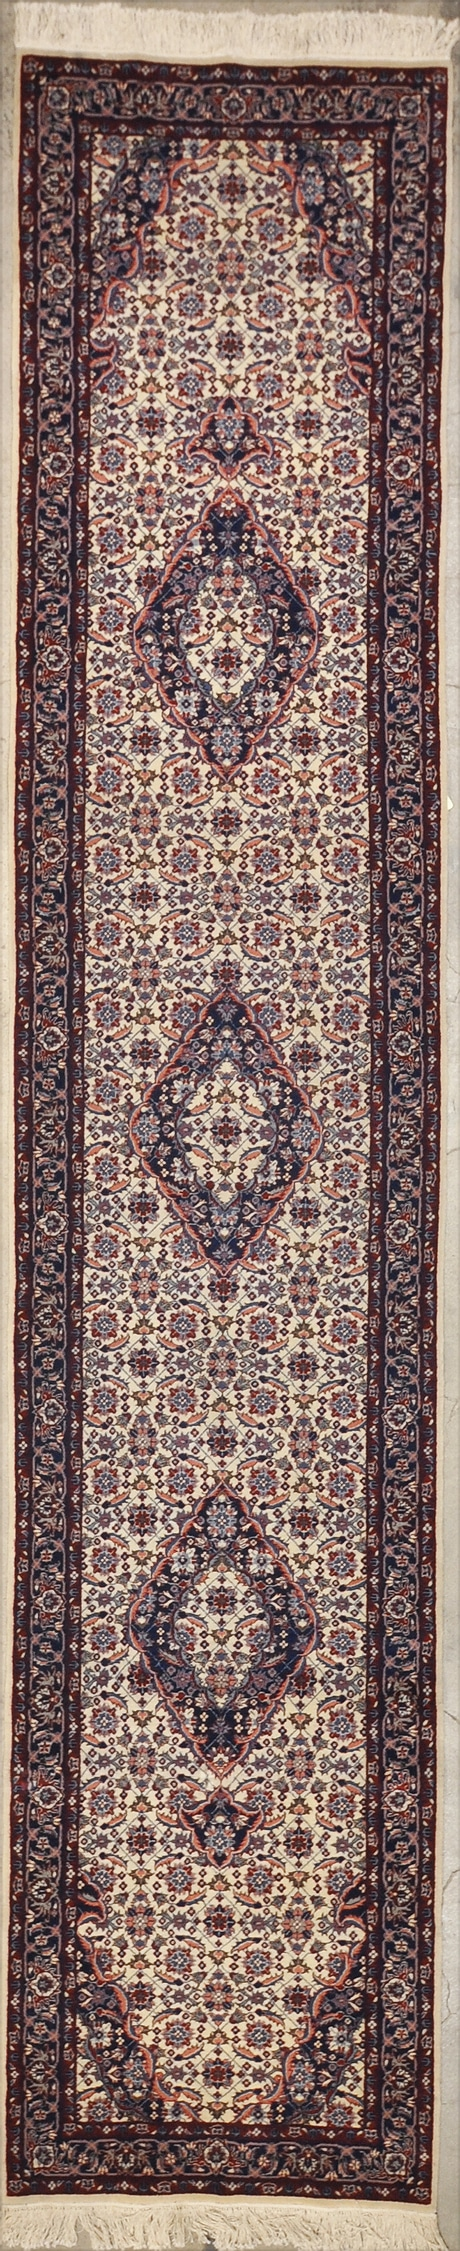 Fine Tabriz Runner rugs and more oriental carpet 44012-